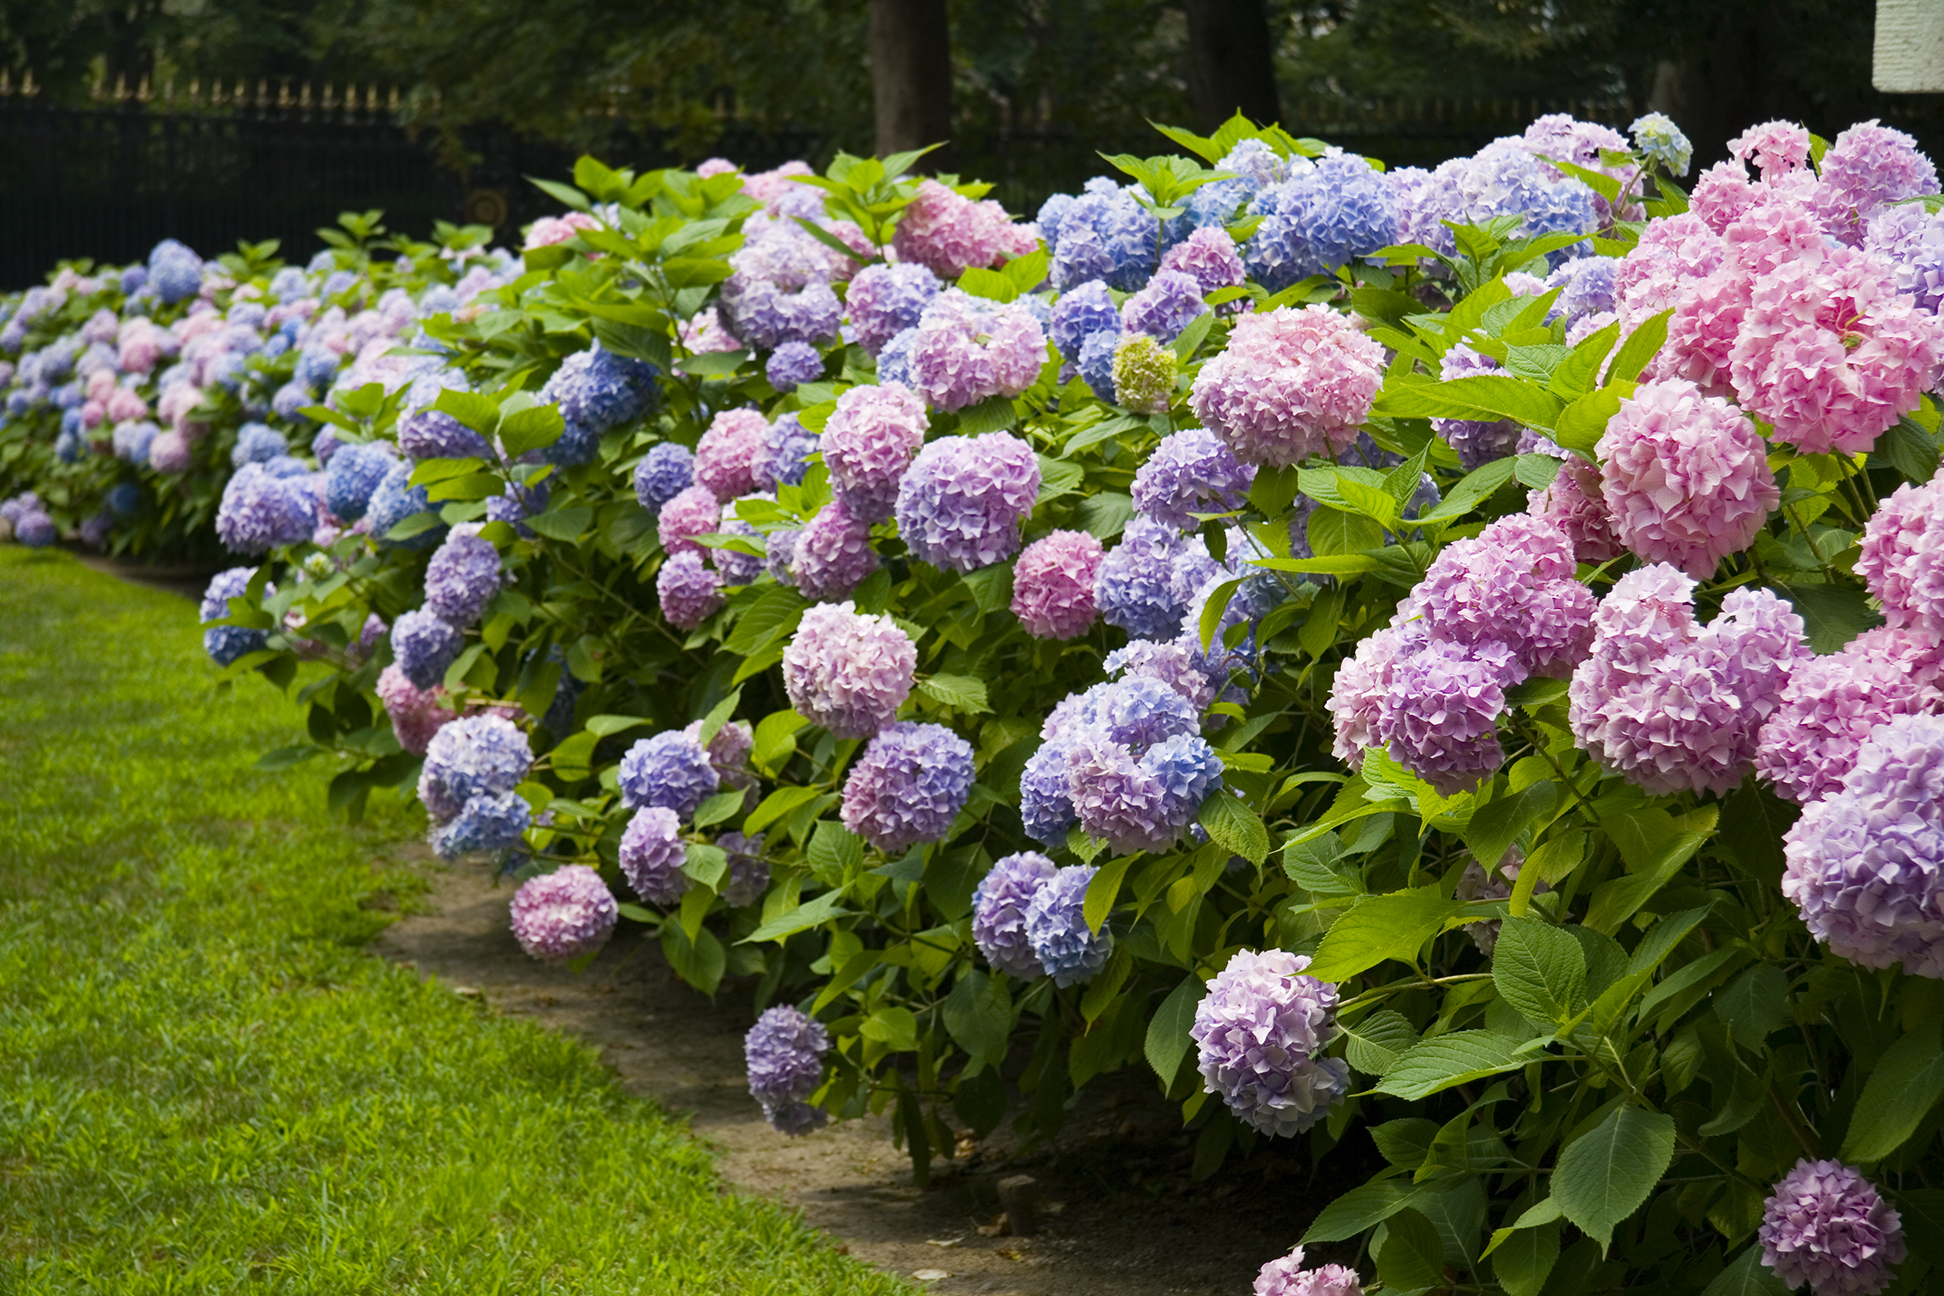 Fluffy pink and purple hydrangea plants